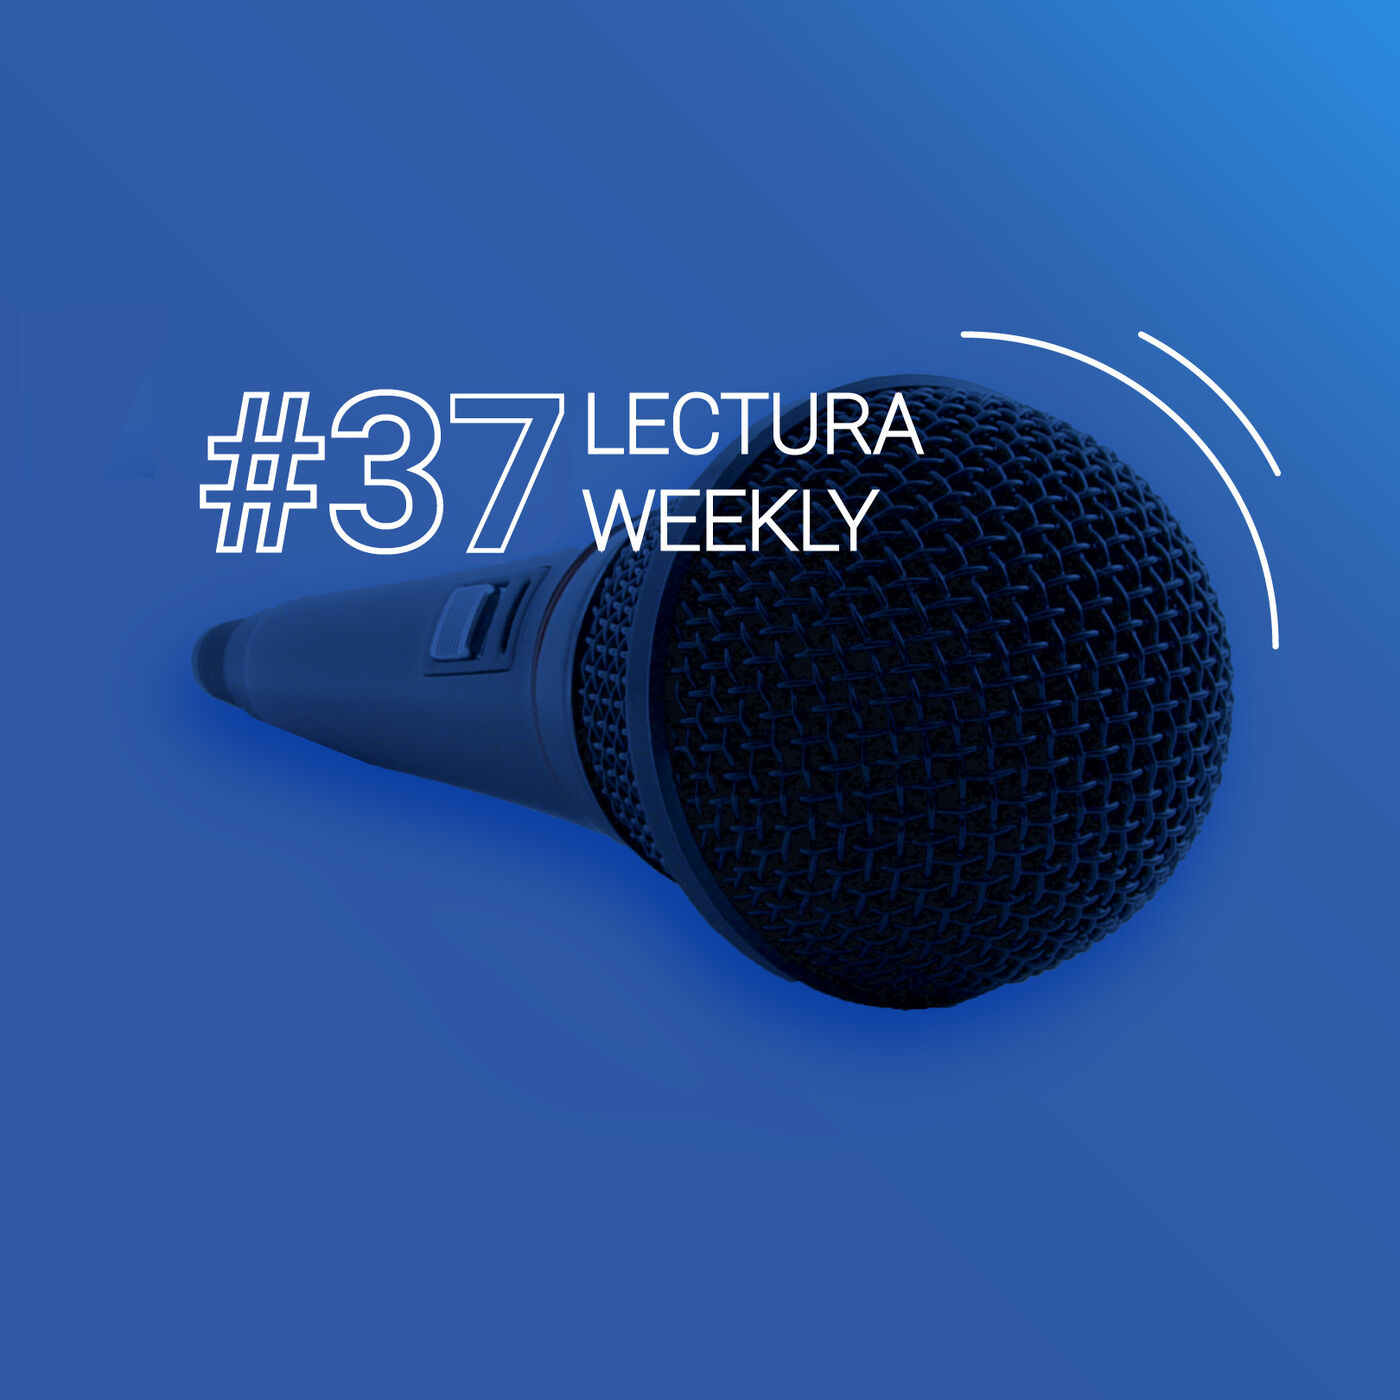 Lectura Weekly Podcasts: Week 37